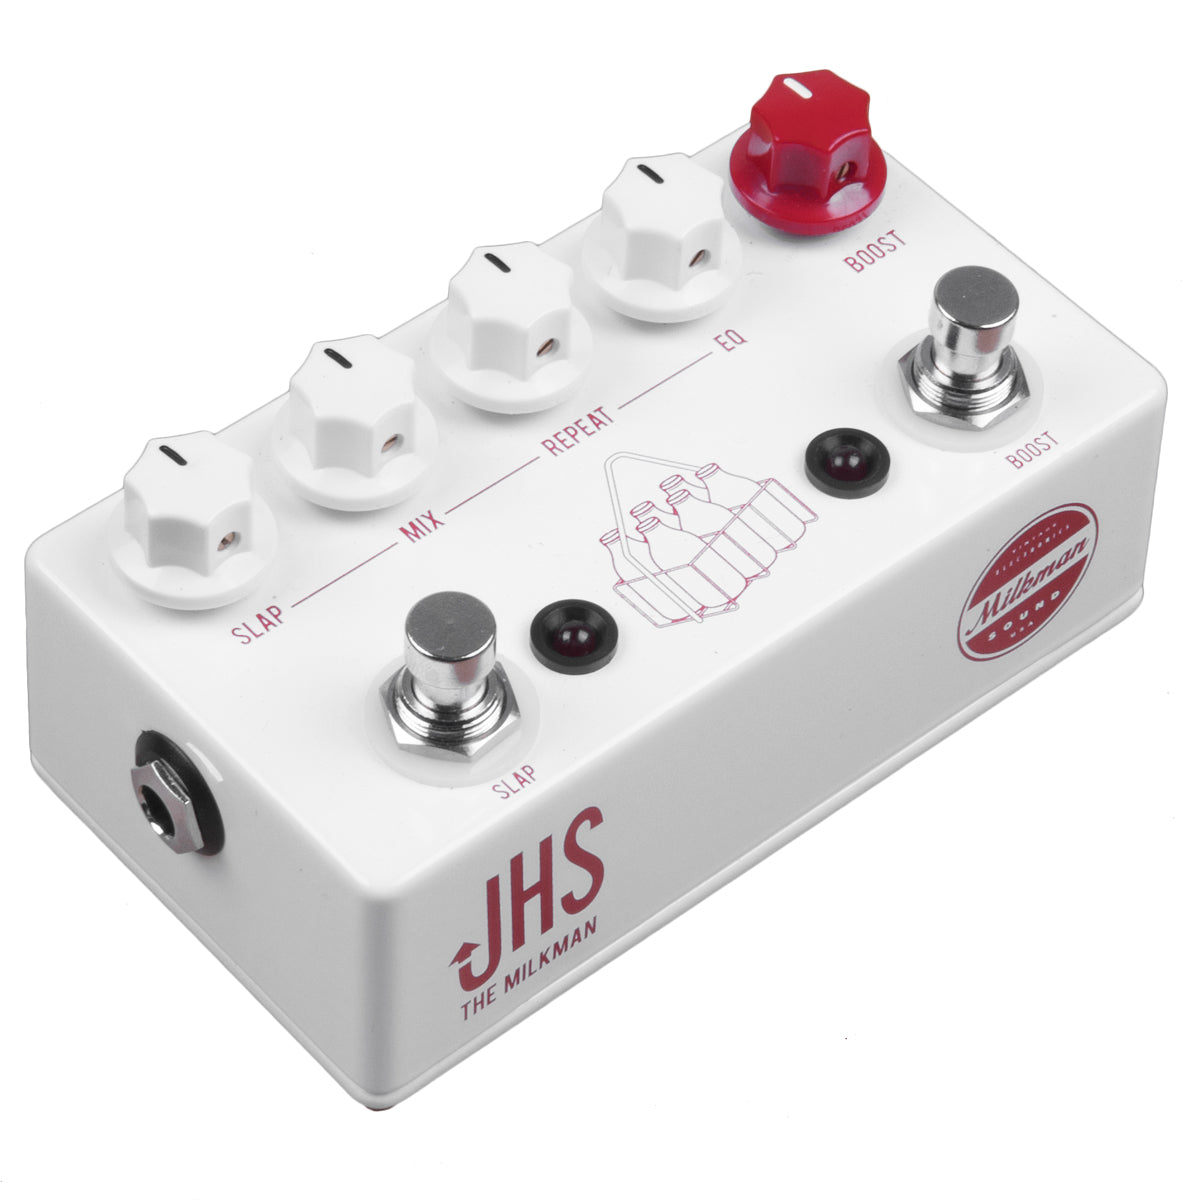 JHS Pedals The Milkman Delay Echo